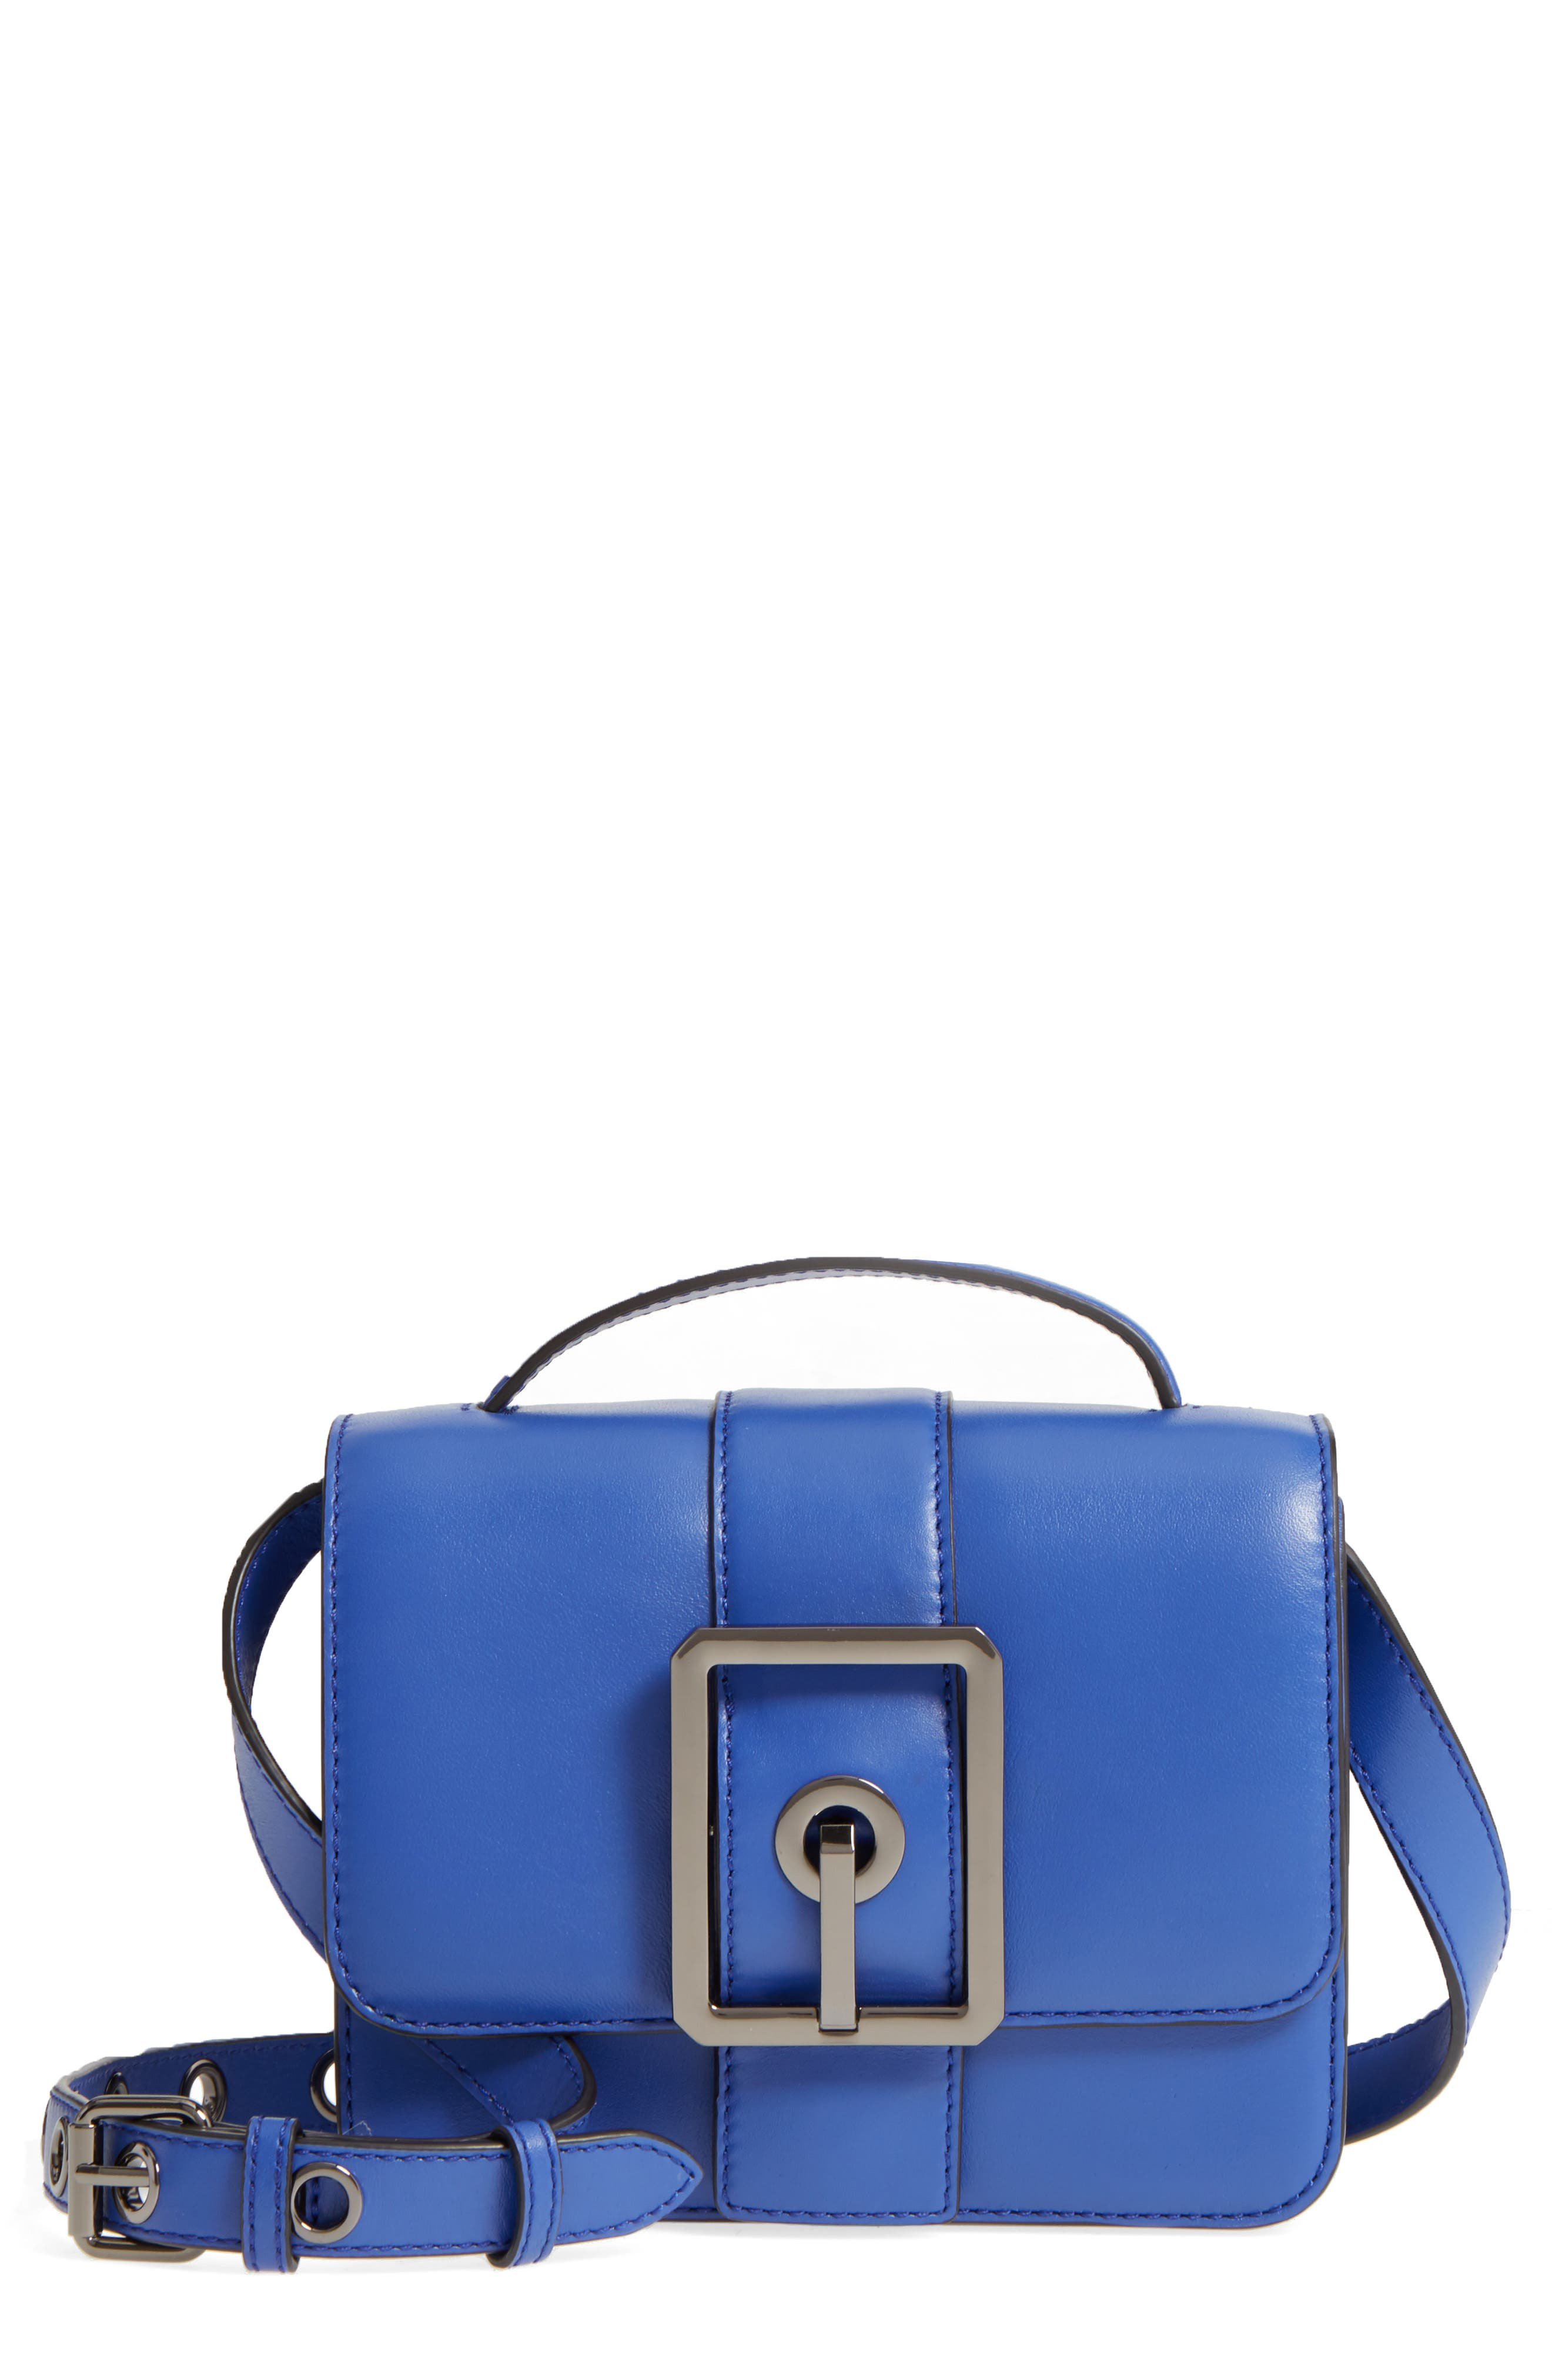 Alternate Image 1 Selected - Rebecca Minkoff Small Hook Up Leather Top Handle Satchel